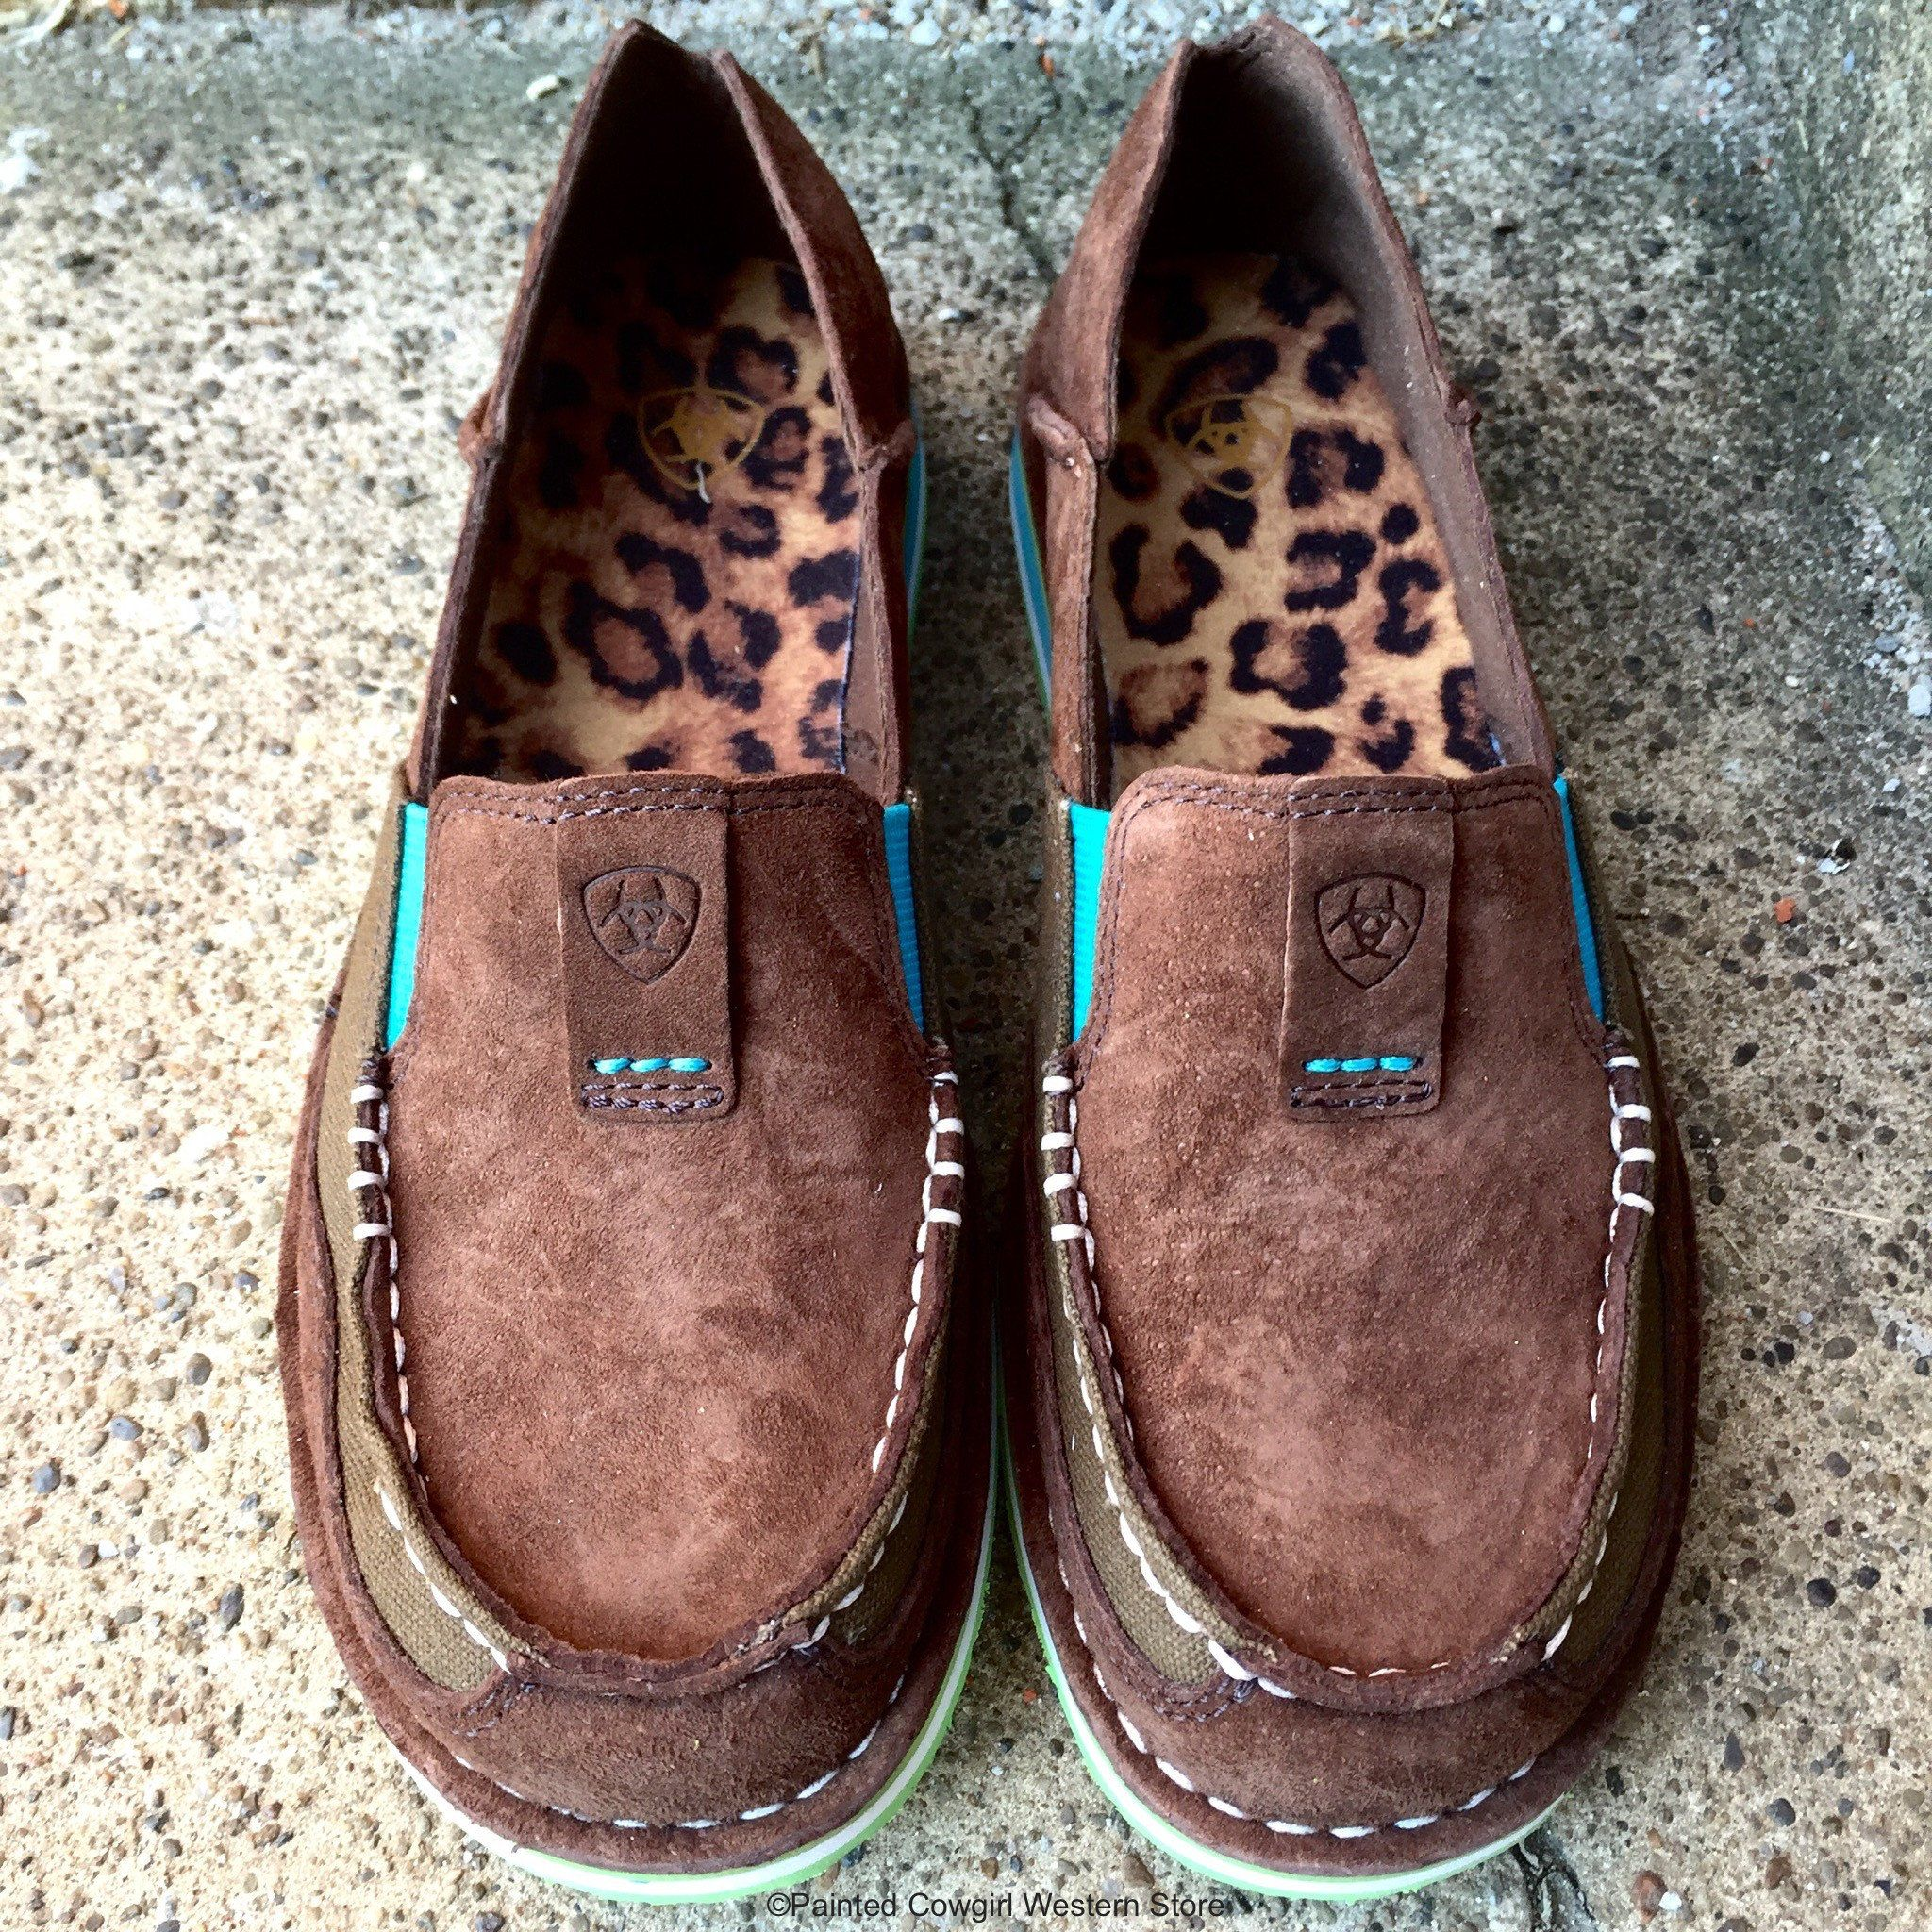 6545be555c4a04 Ariat Women s Palm Cruiser Brown   Turquoise Slip-On Shoe 10017457 ...